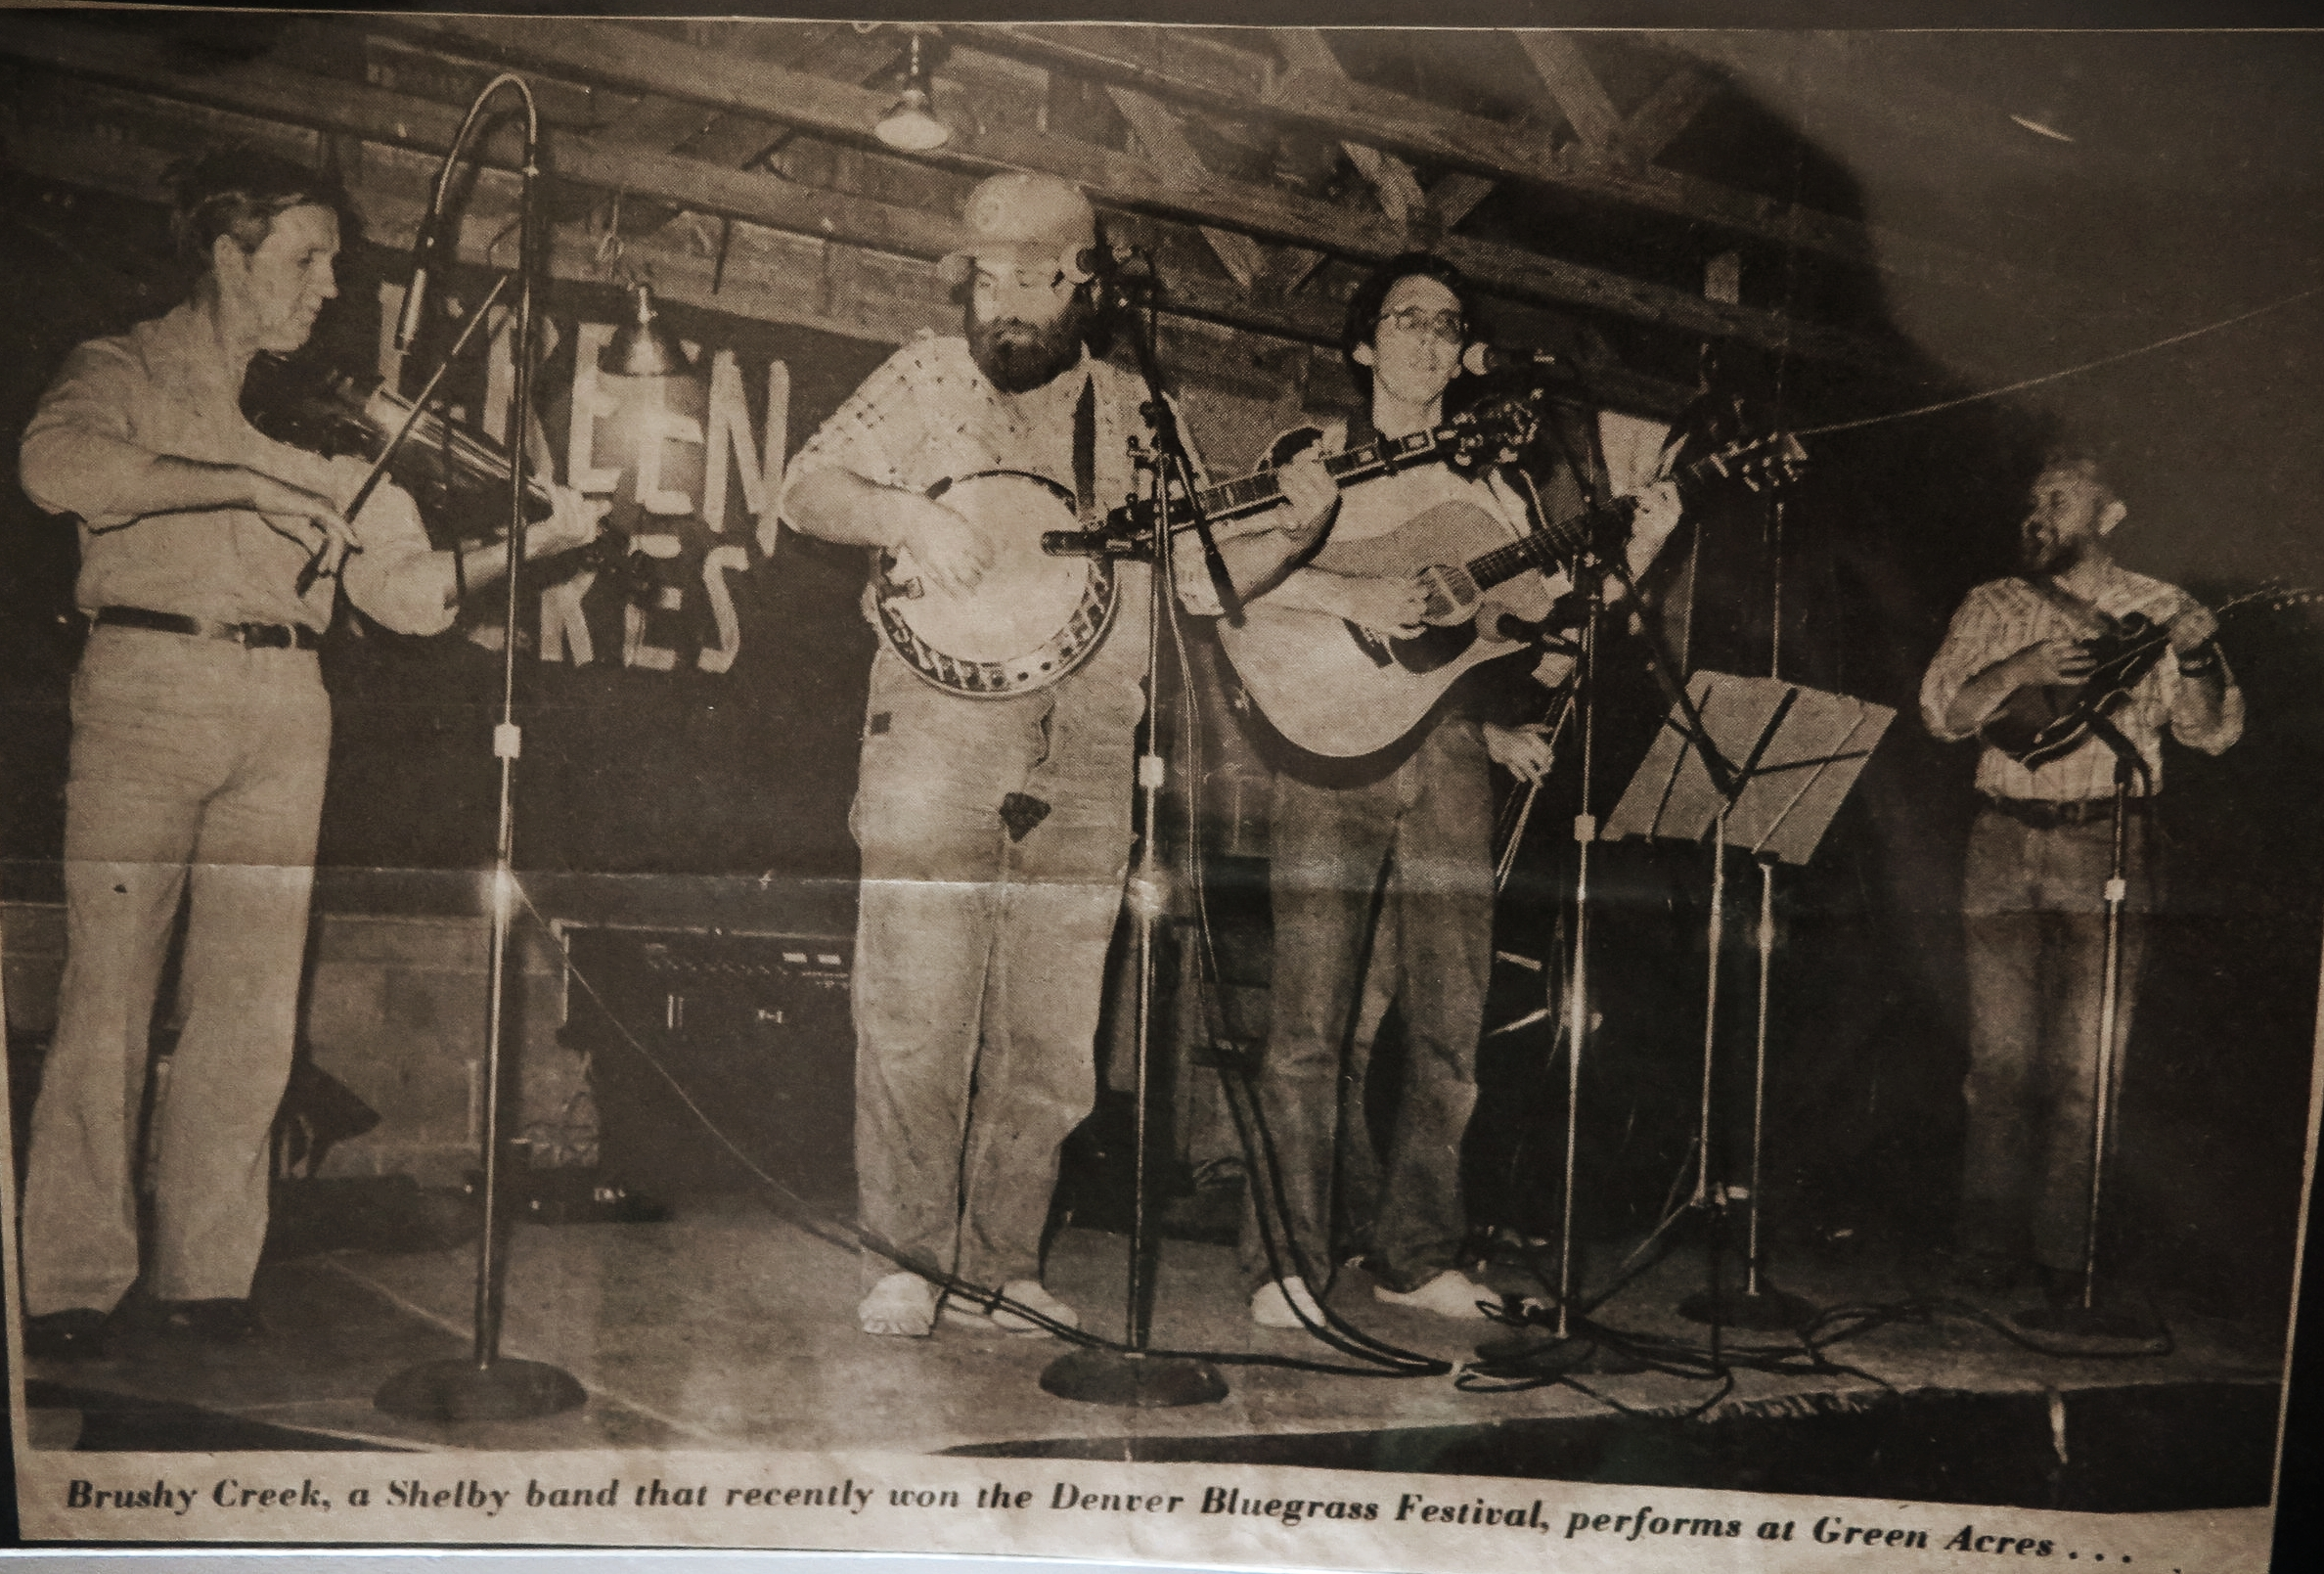 Brushy Creek plays at Green Acres in the late 1970s.